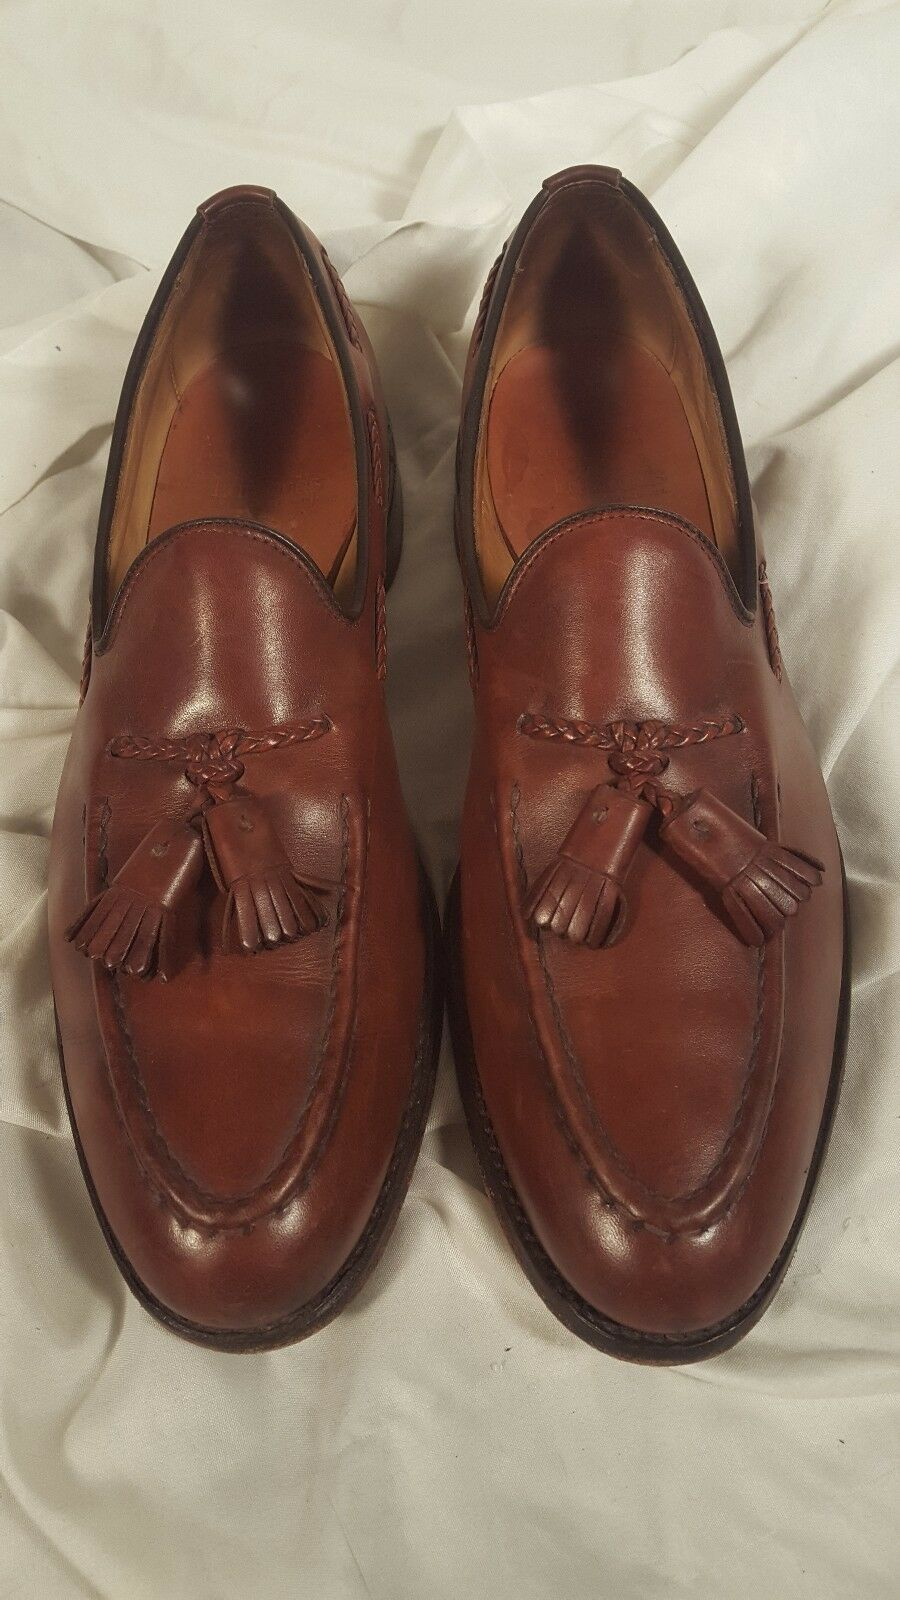 Man/Woman allen Great edmonds, mens dress shoe Great allen variety product quality Don't worry when shopping 56a2fc